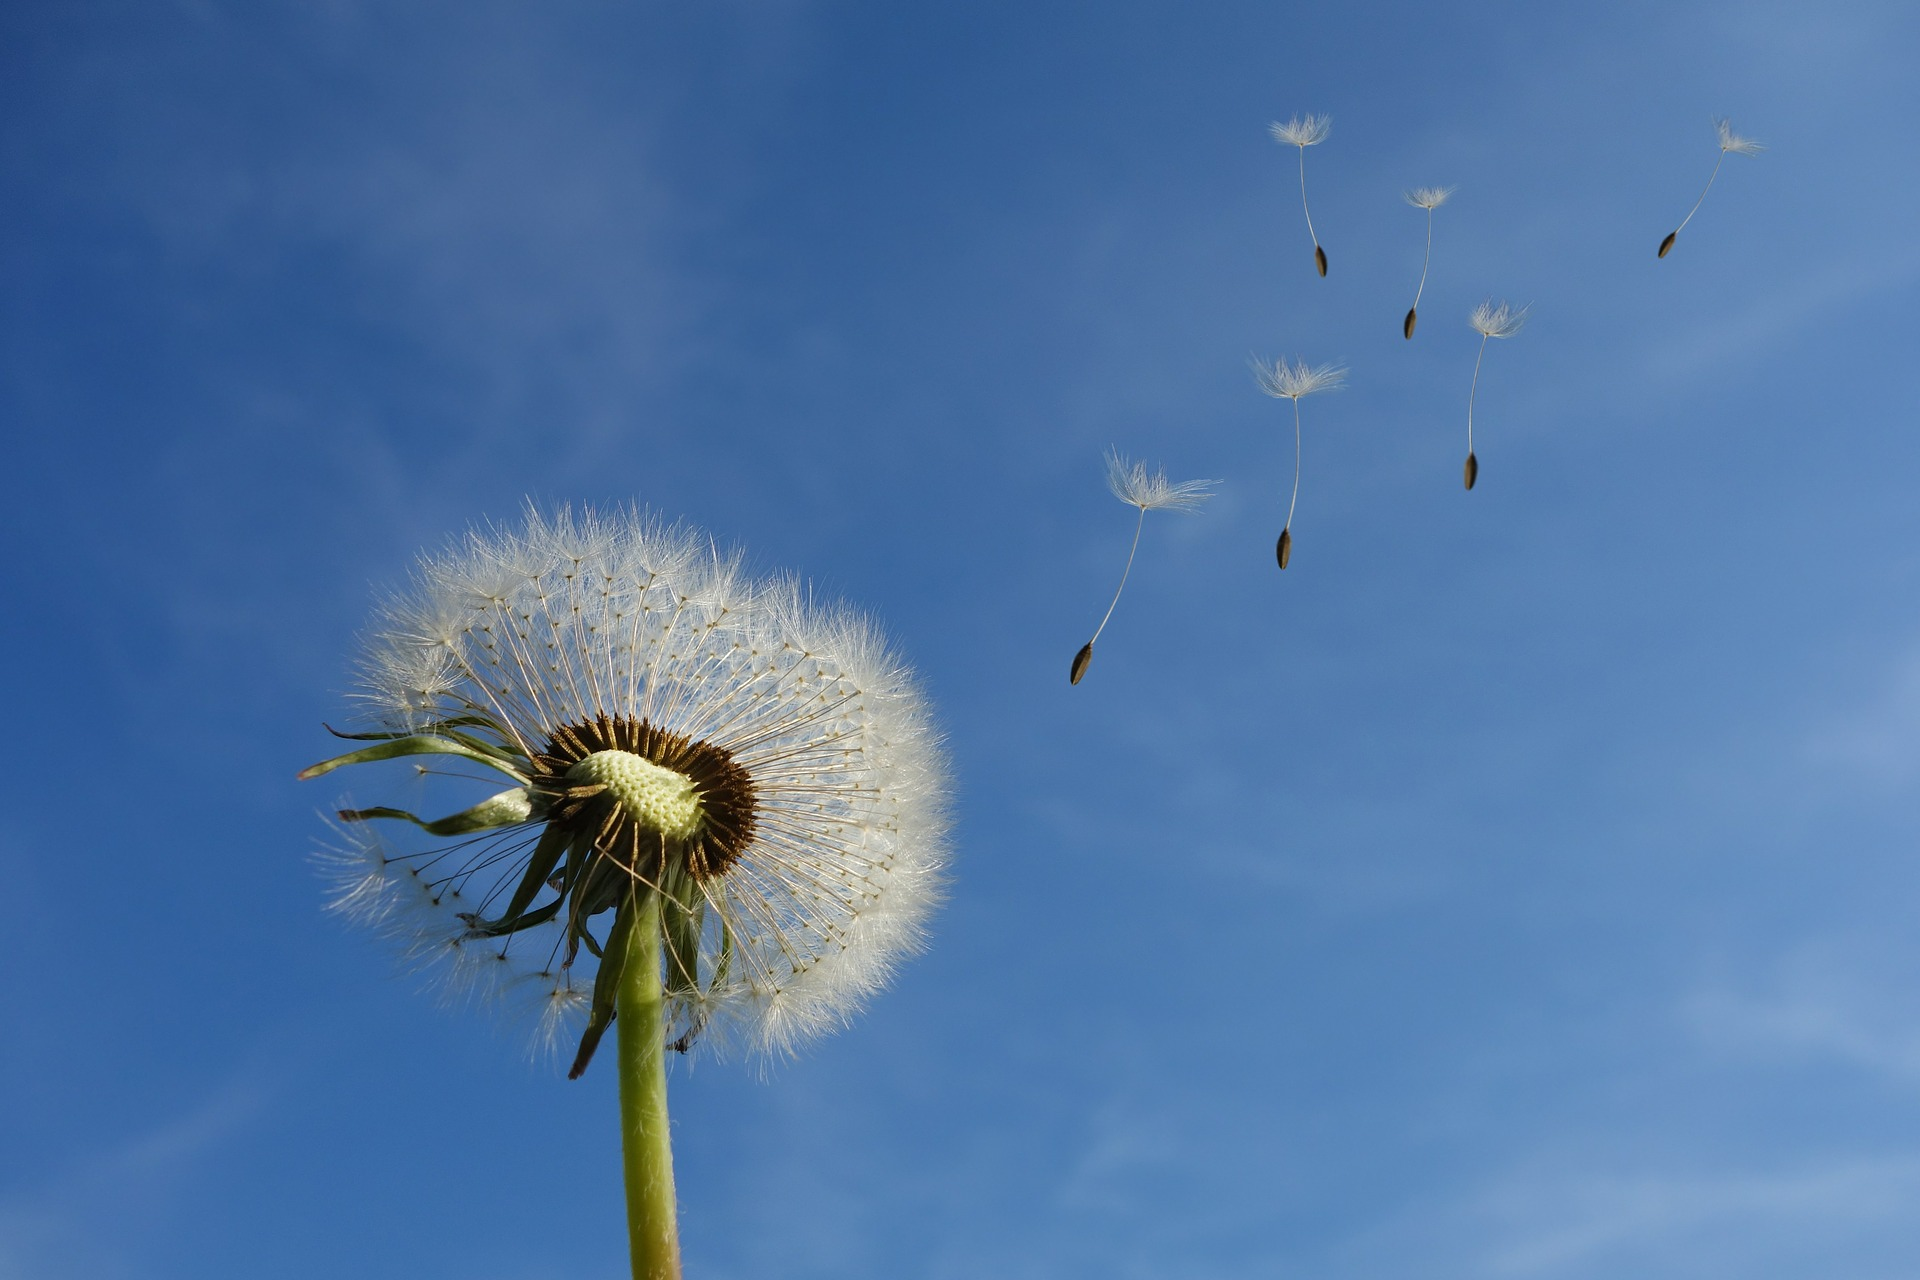 The wind blows wherever it wishes (John 3:8)